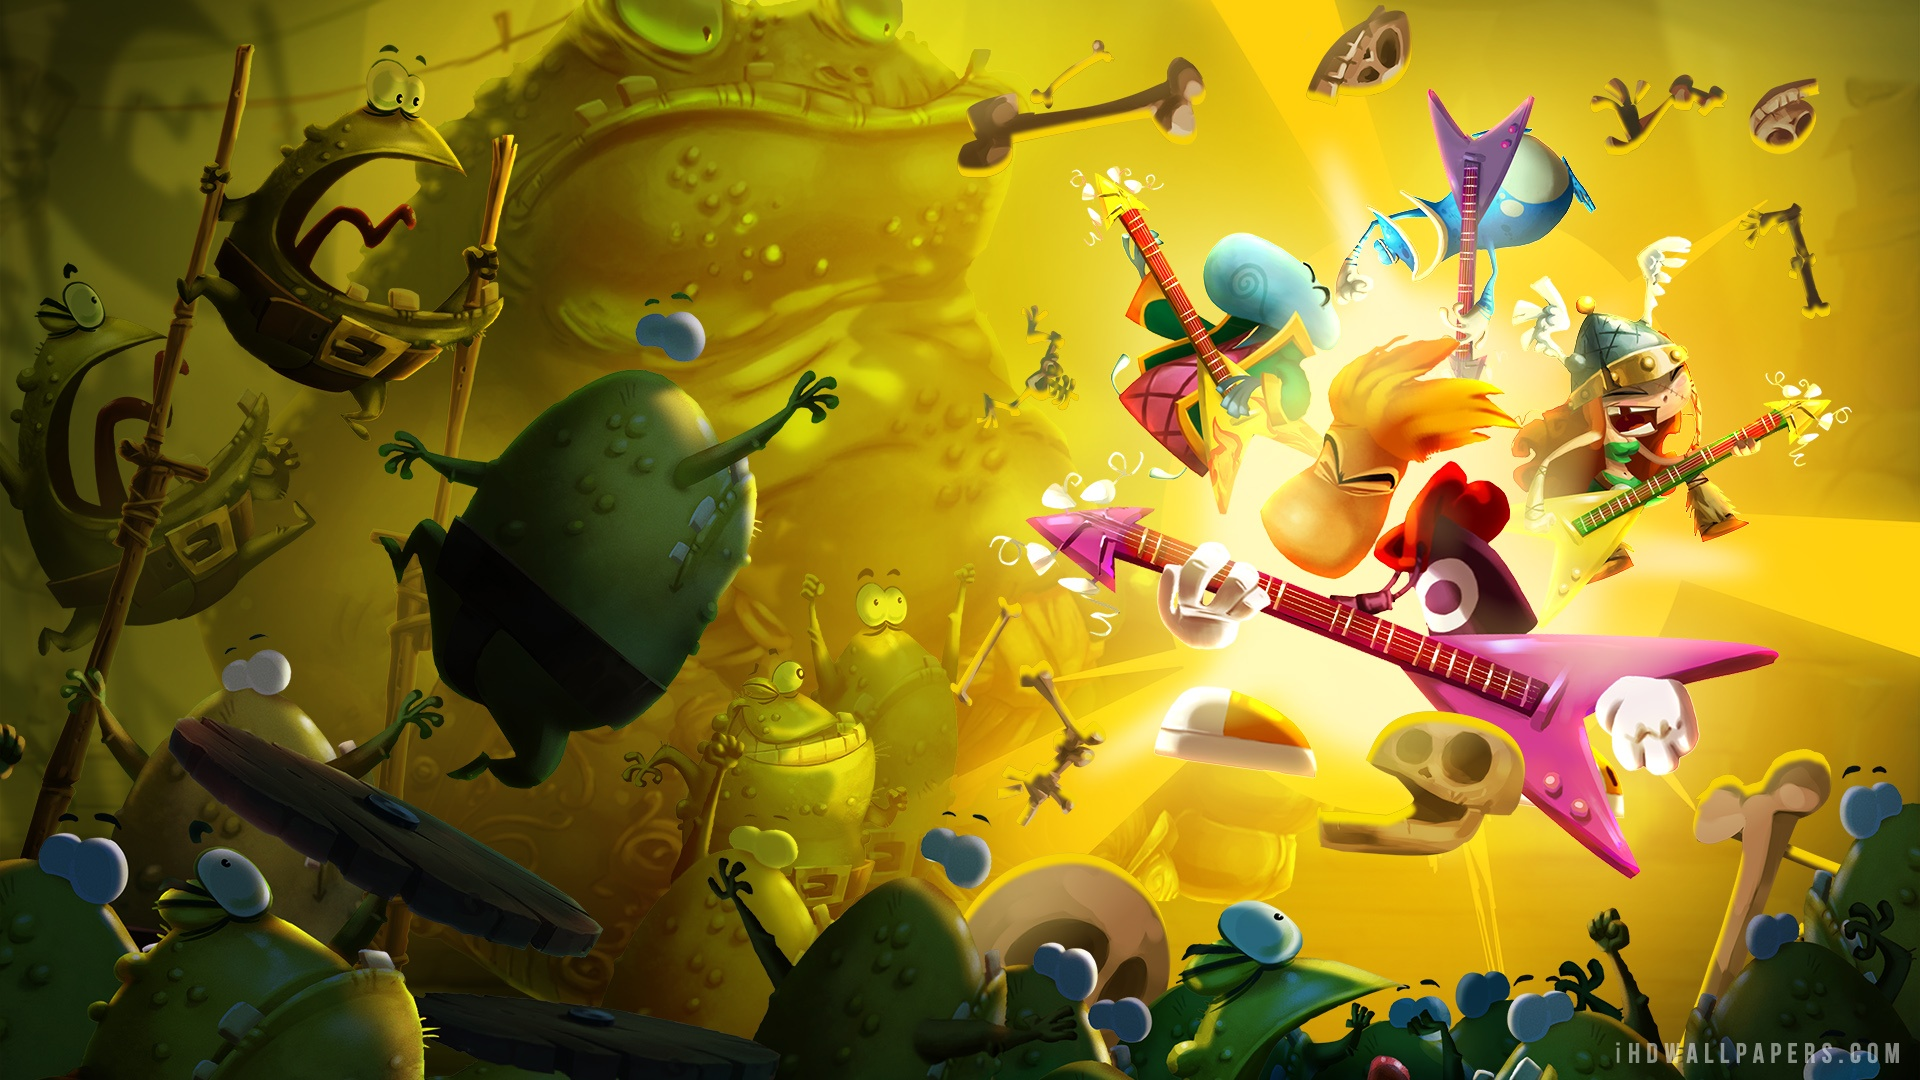 Download Rayman Legends Rock n Roll wallpaper from the following 1920x1080